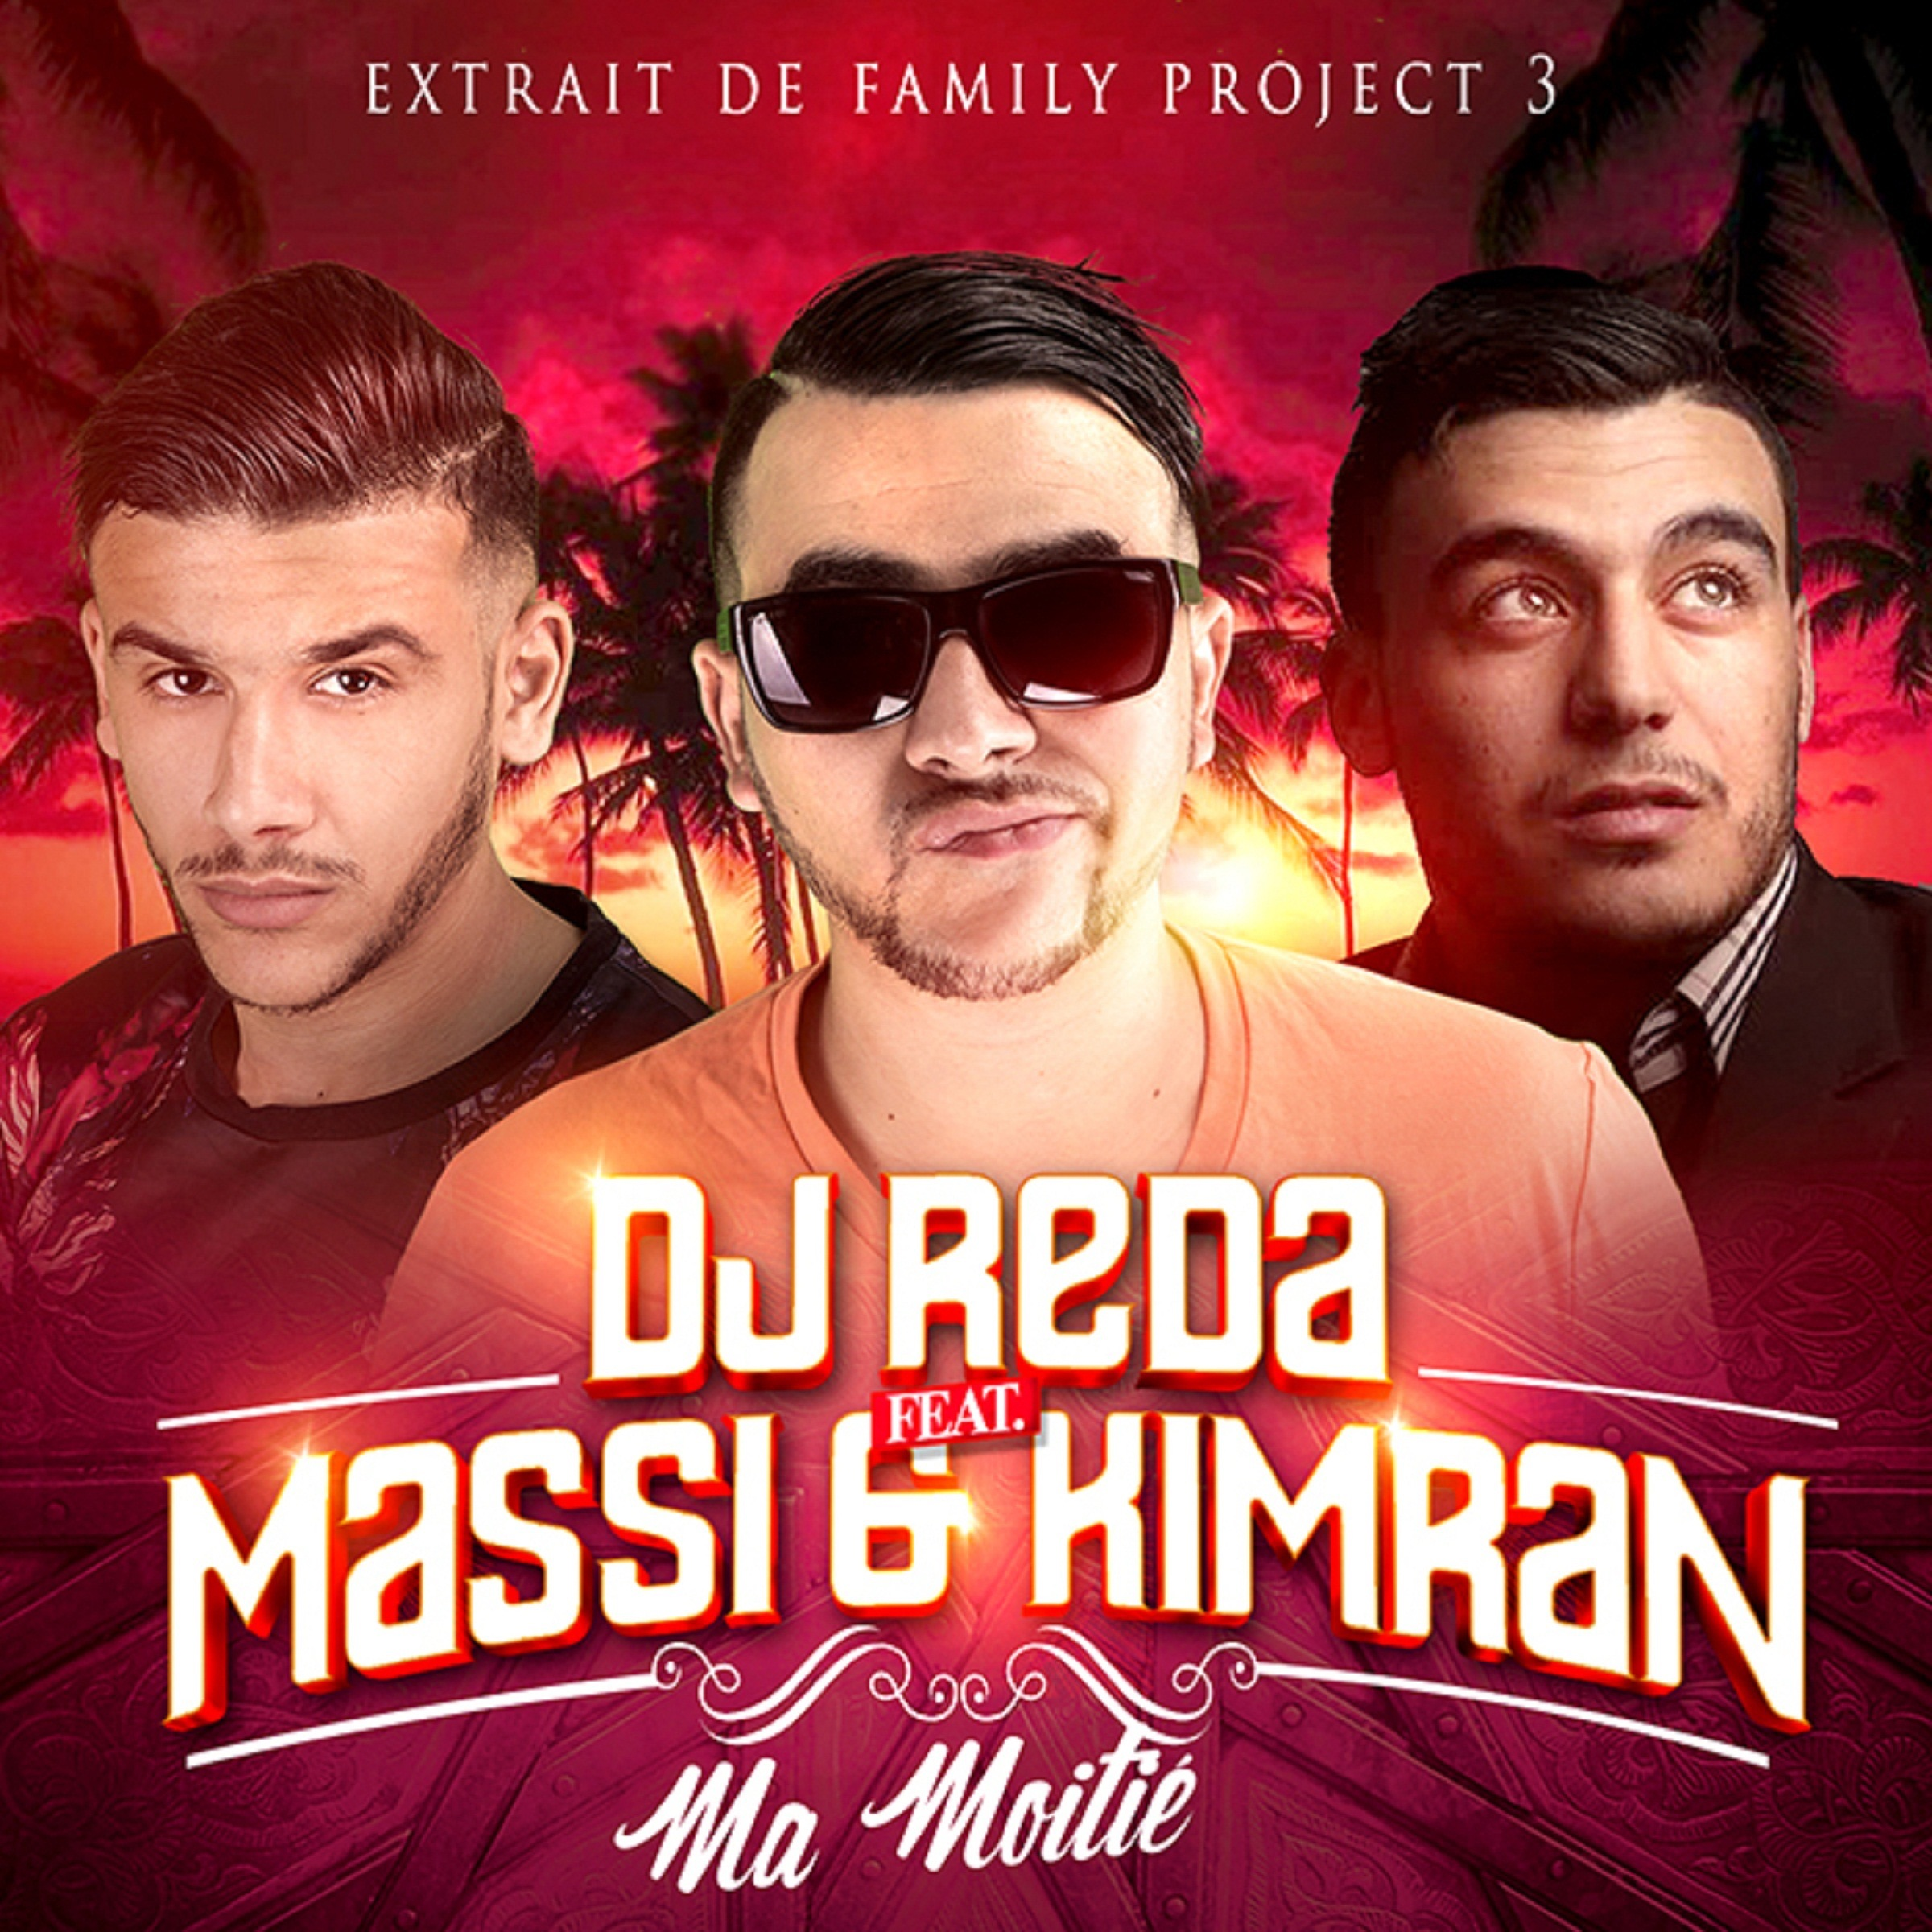 Ma moitié (feat. Massi & Kimran) [From